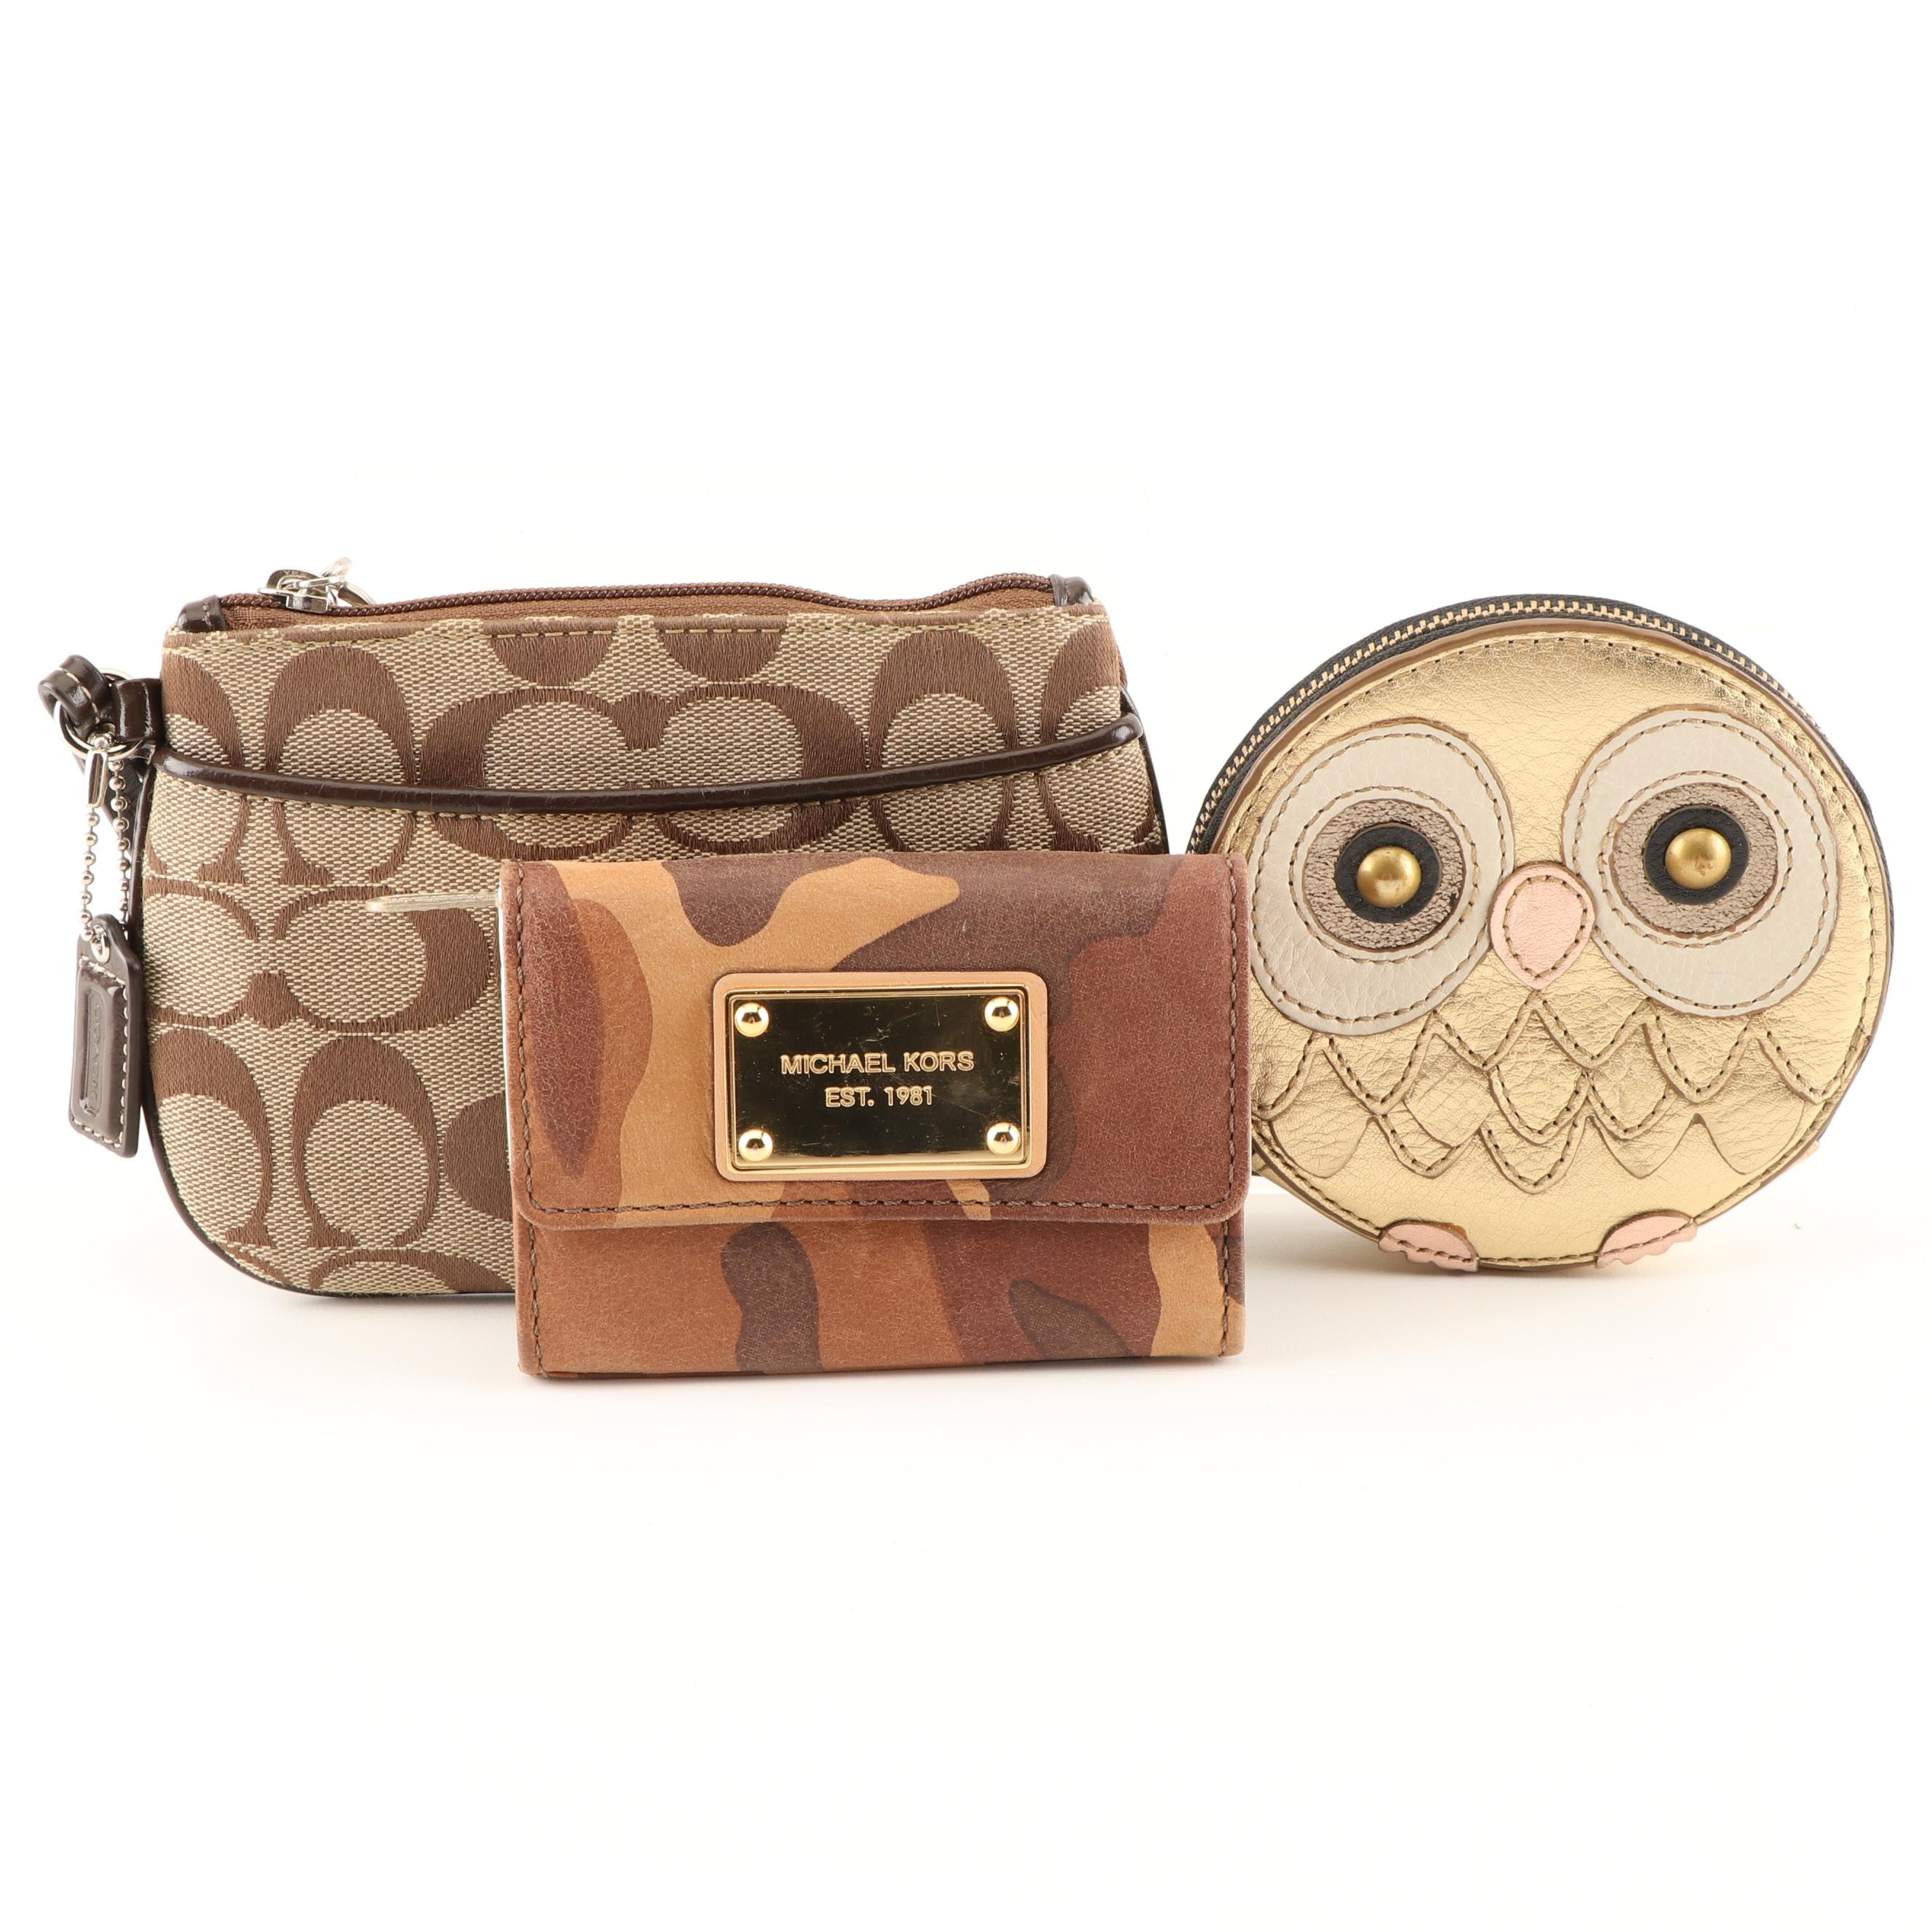 Coach Wristlet, Michael Kors Card Case and Fossil Coin Purse